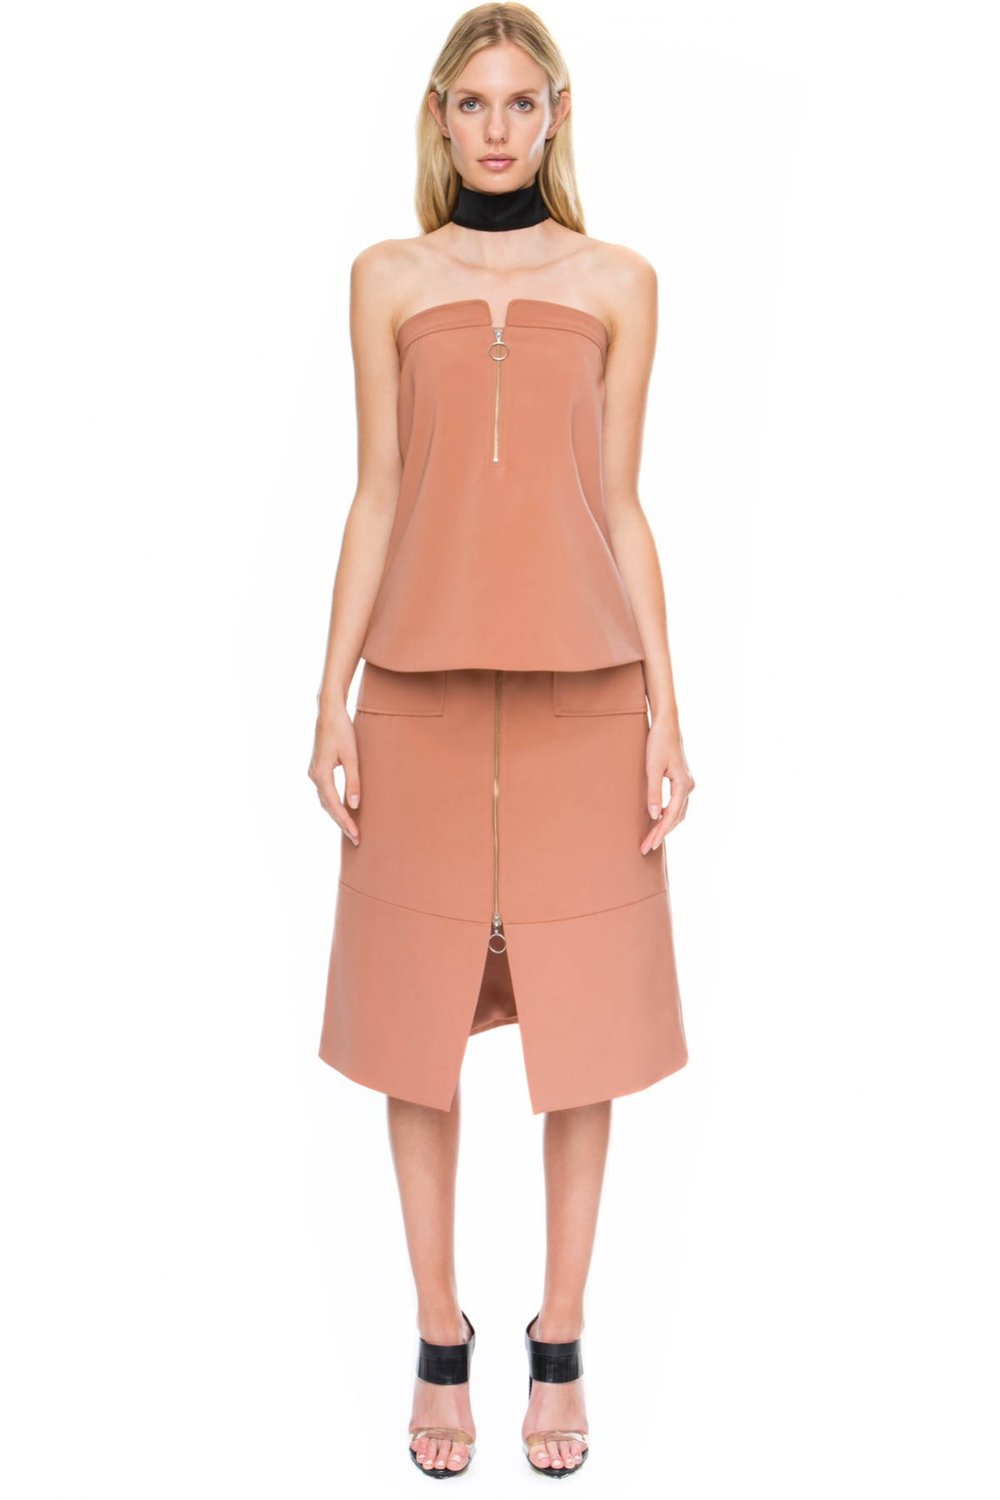 Shop C/MEO COLLECTIVE Distant Land Top and Skirt.